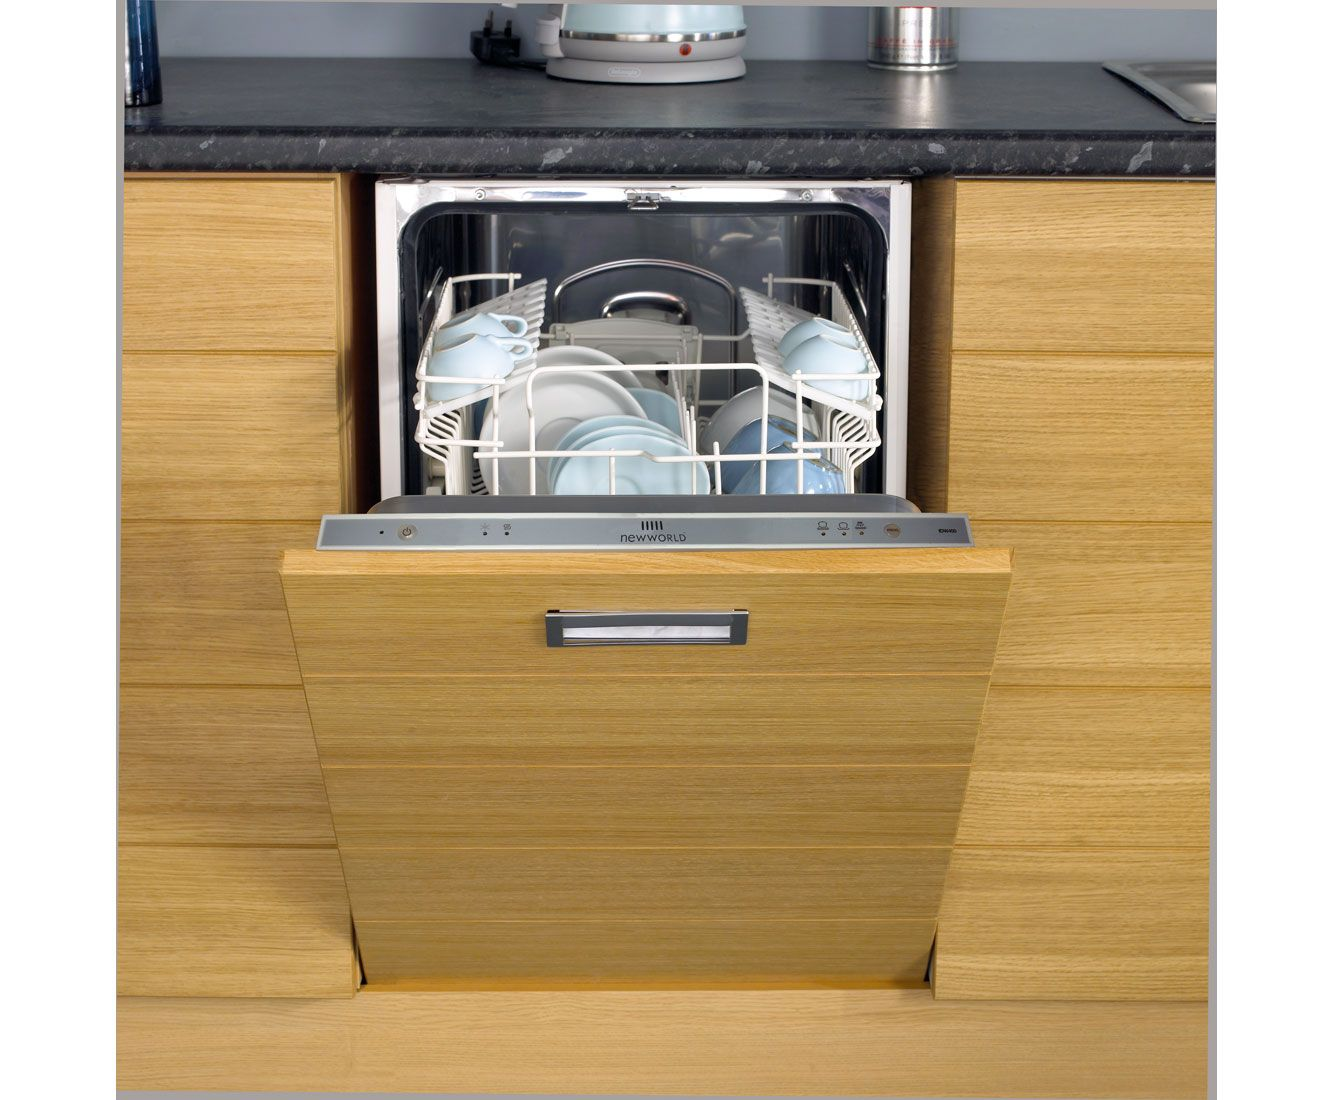 Uncategorized Slimline Kitchen Appliances newworld integrated slimline dishwasher nwdw45mk2 ao com kitchens